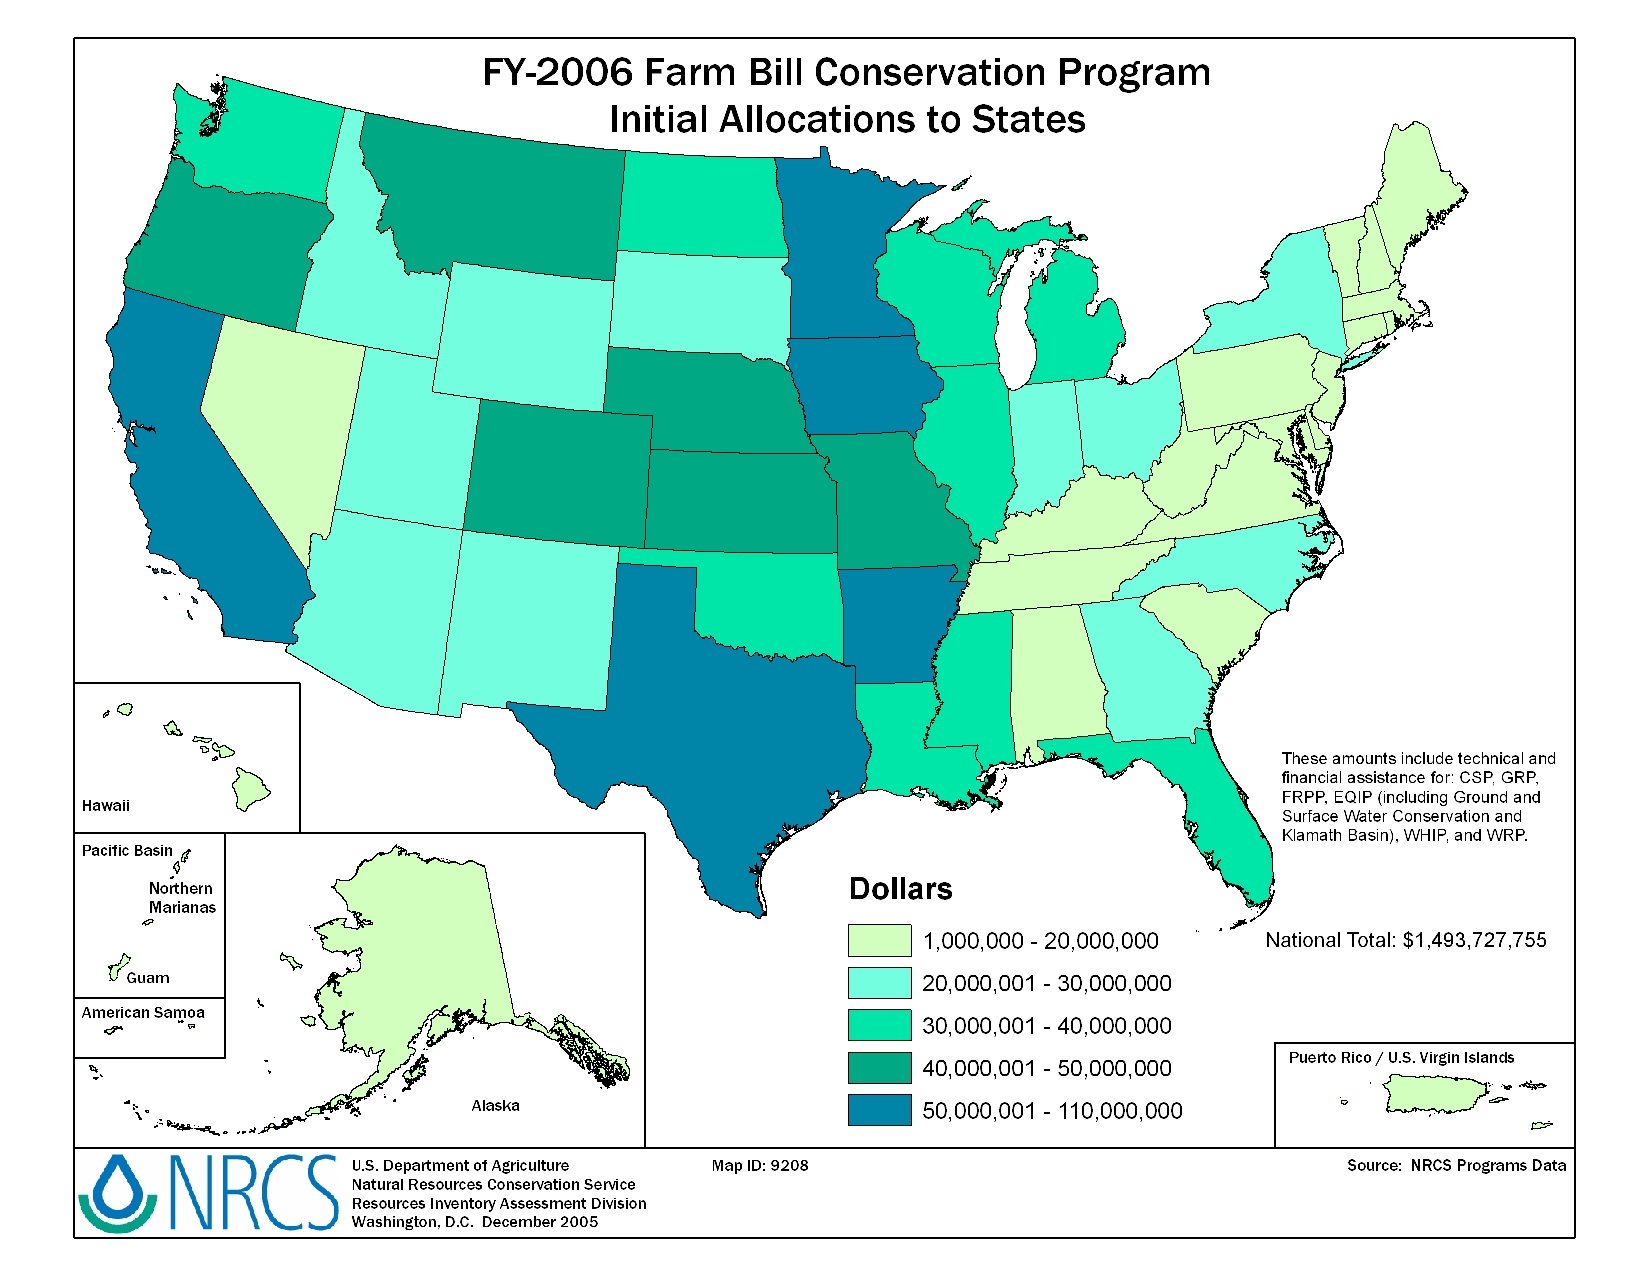 FY-2005 Conservation Program Allocations to States | NRCS